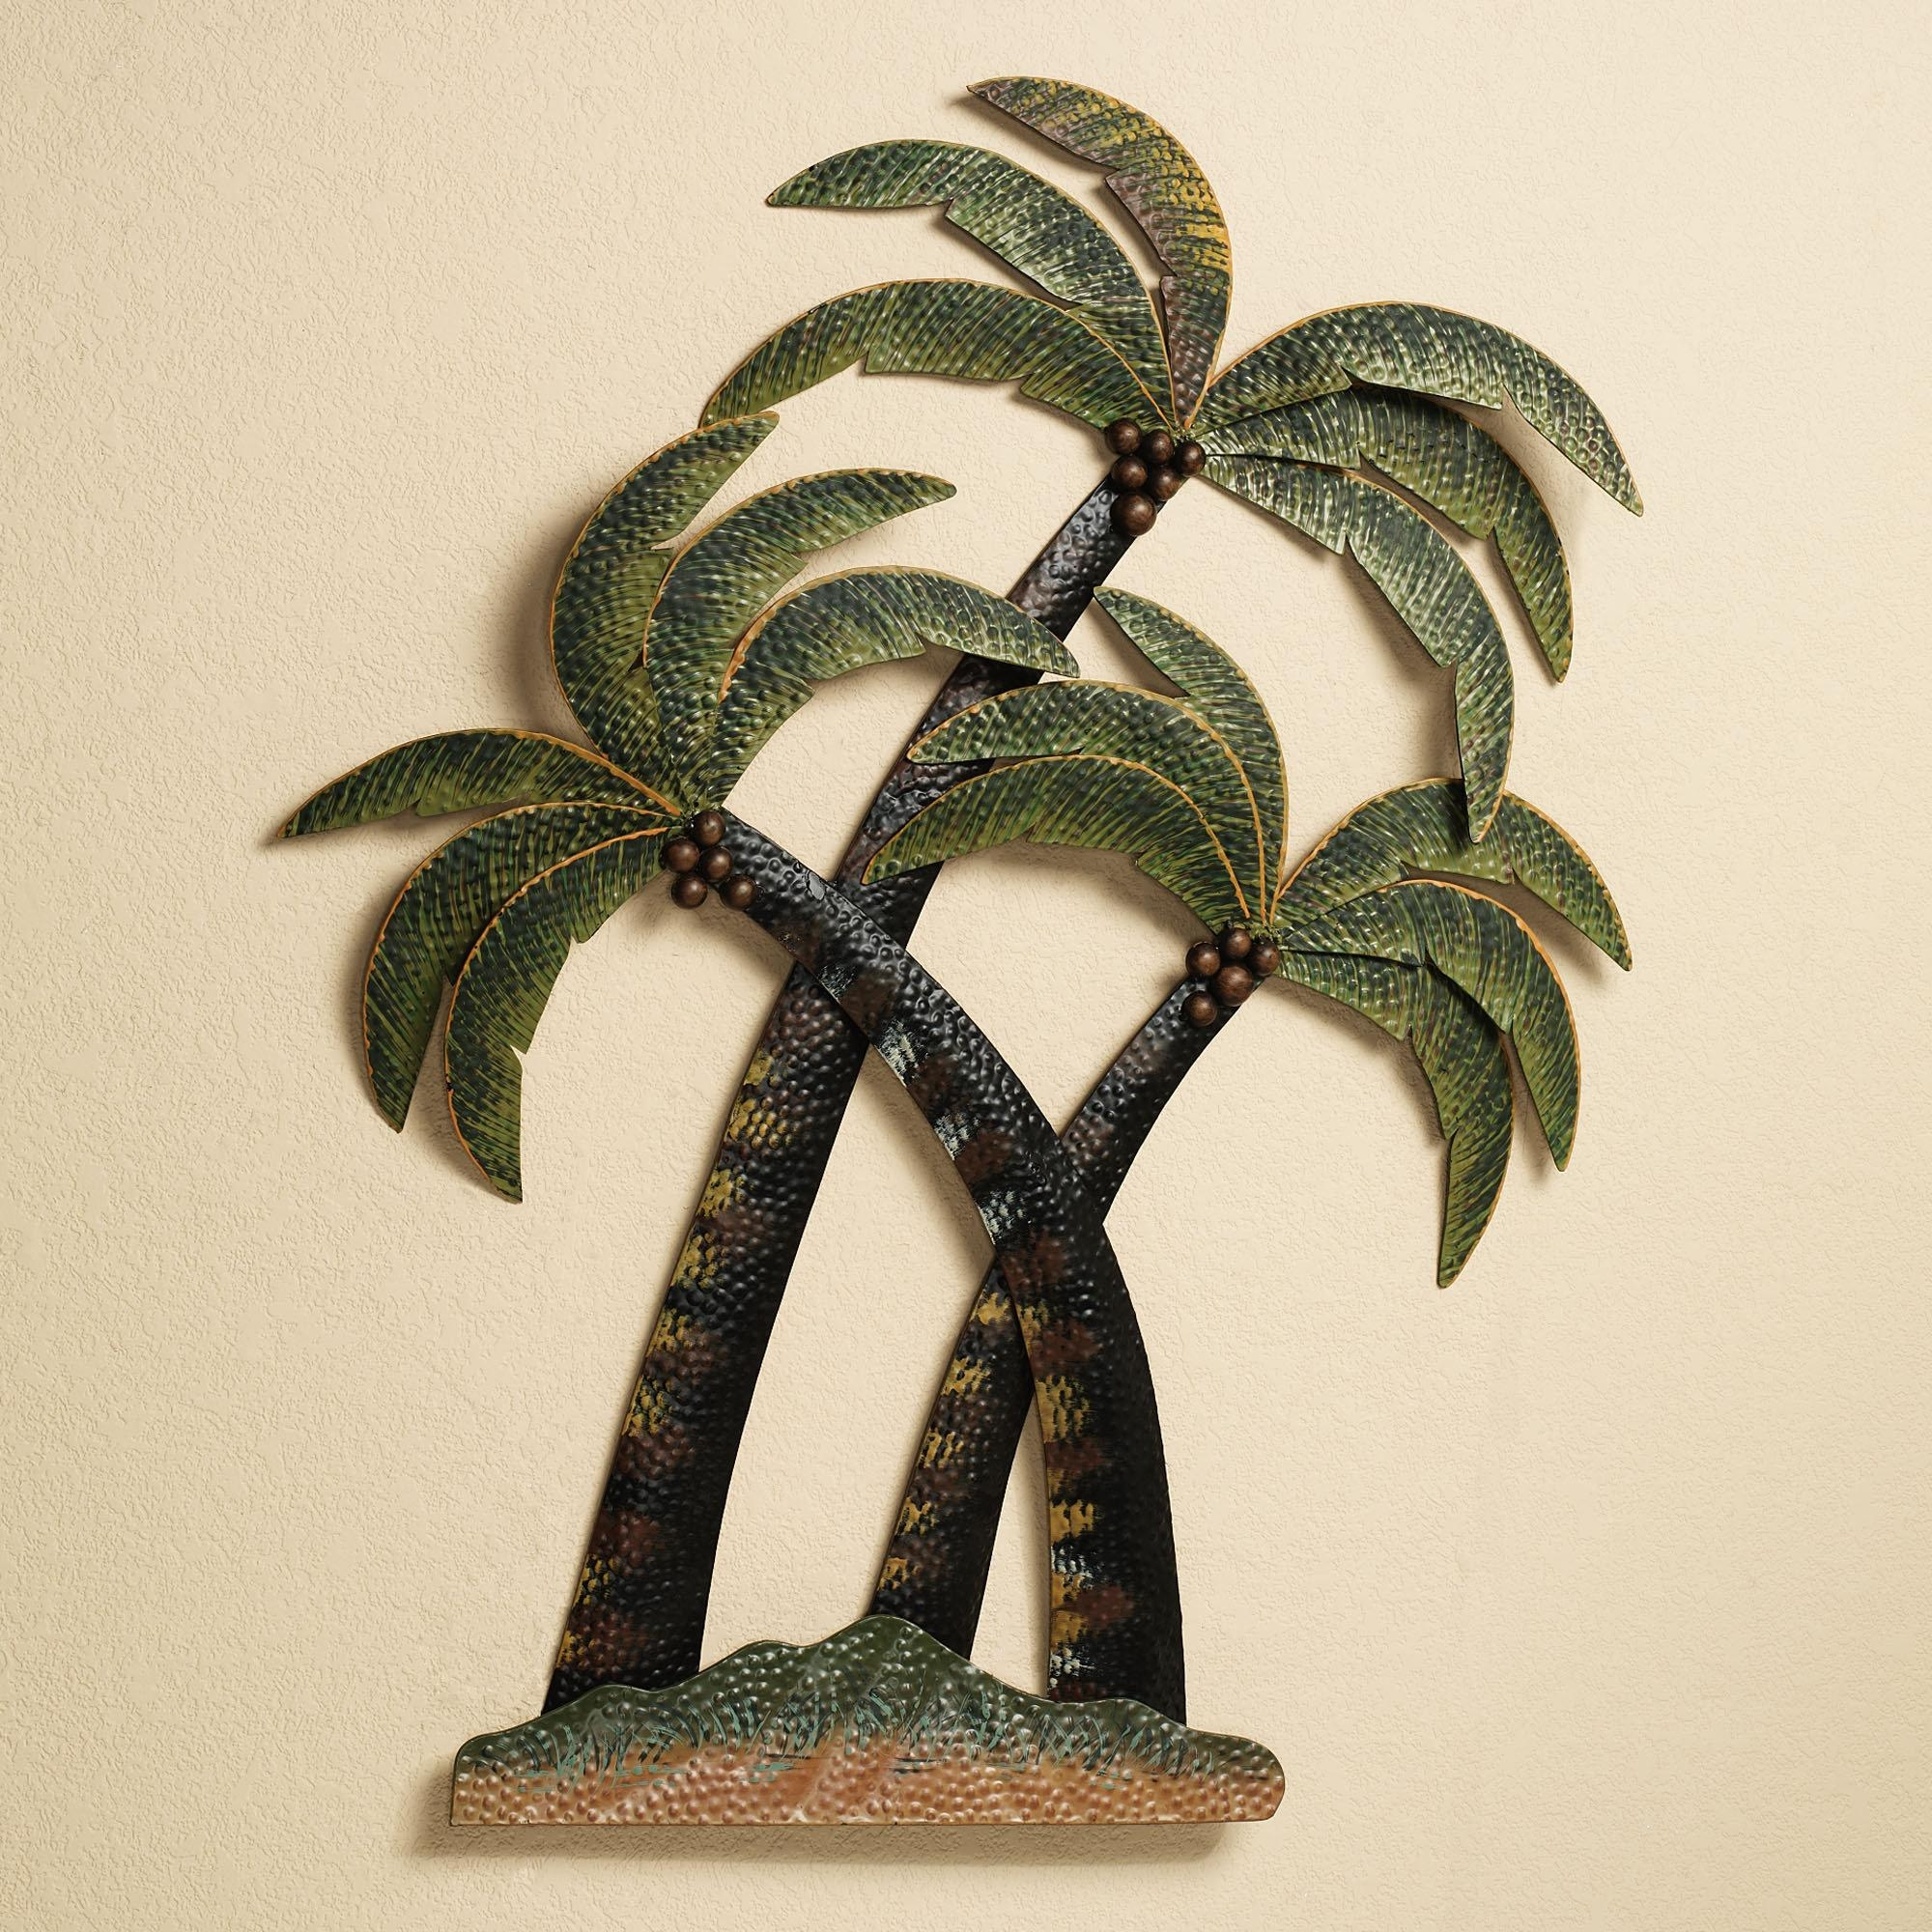 Wall Art Design Ideas: Sculpture Metal Palm Tree Wall Art Outdoor Intended For Stainless Steel Outdoor Wall Art (Image 13 of 20)